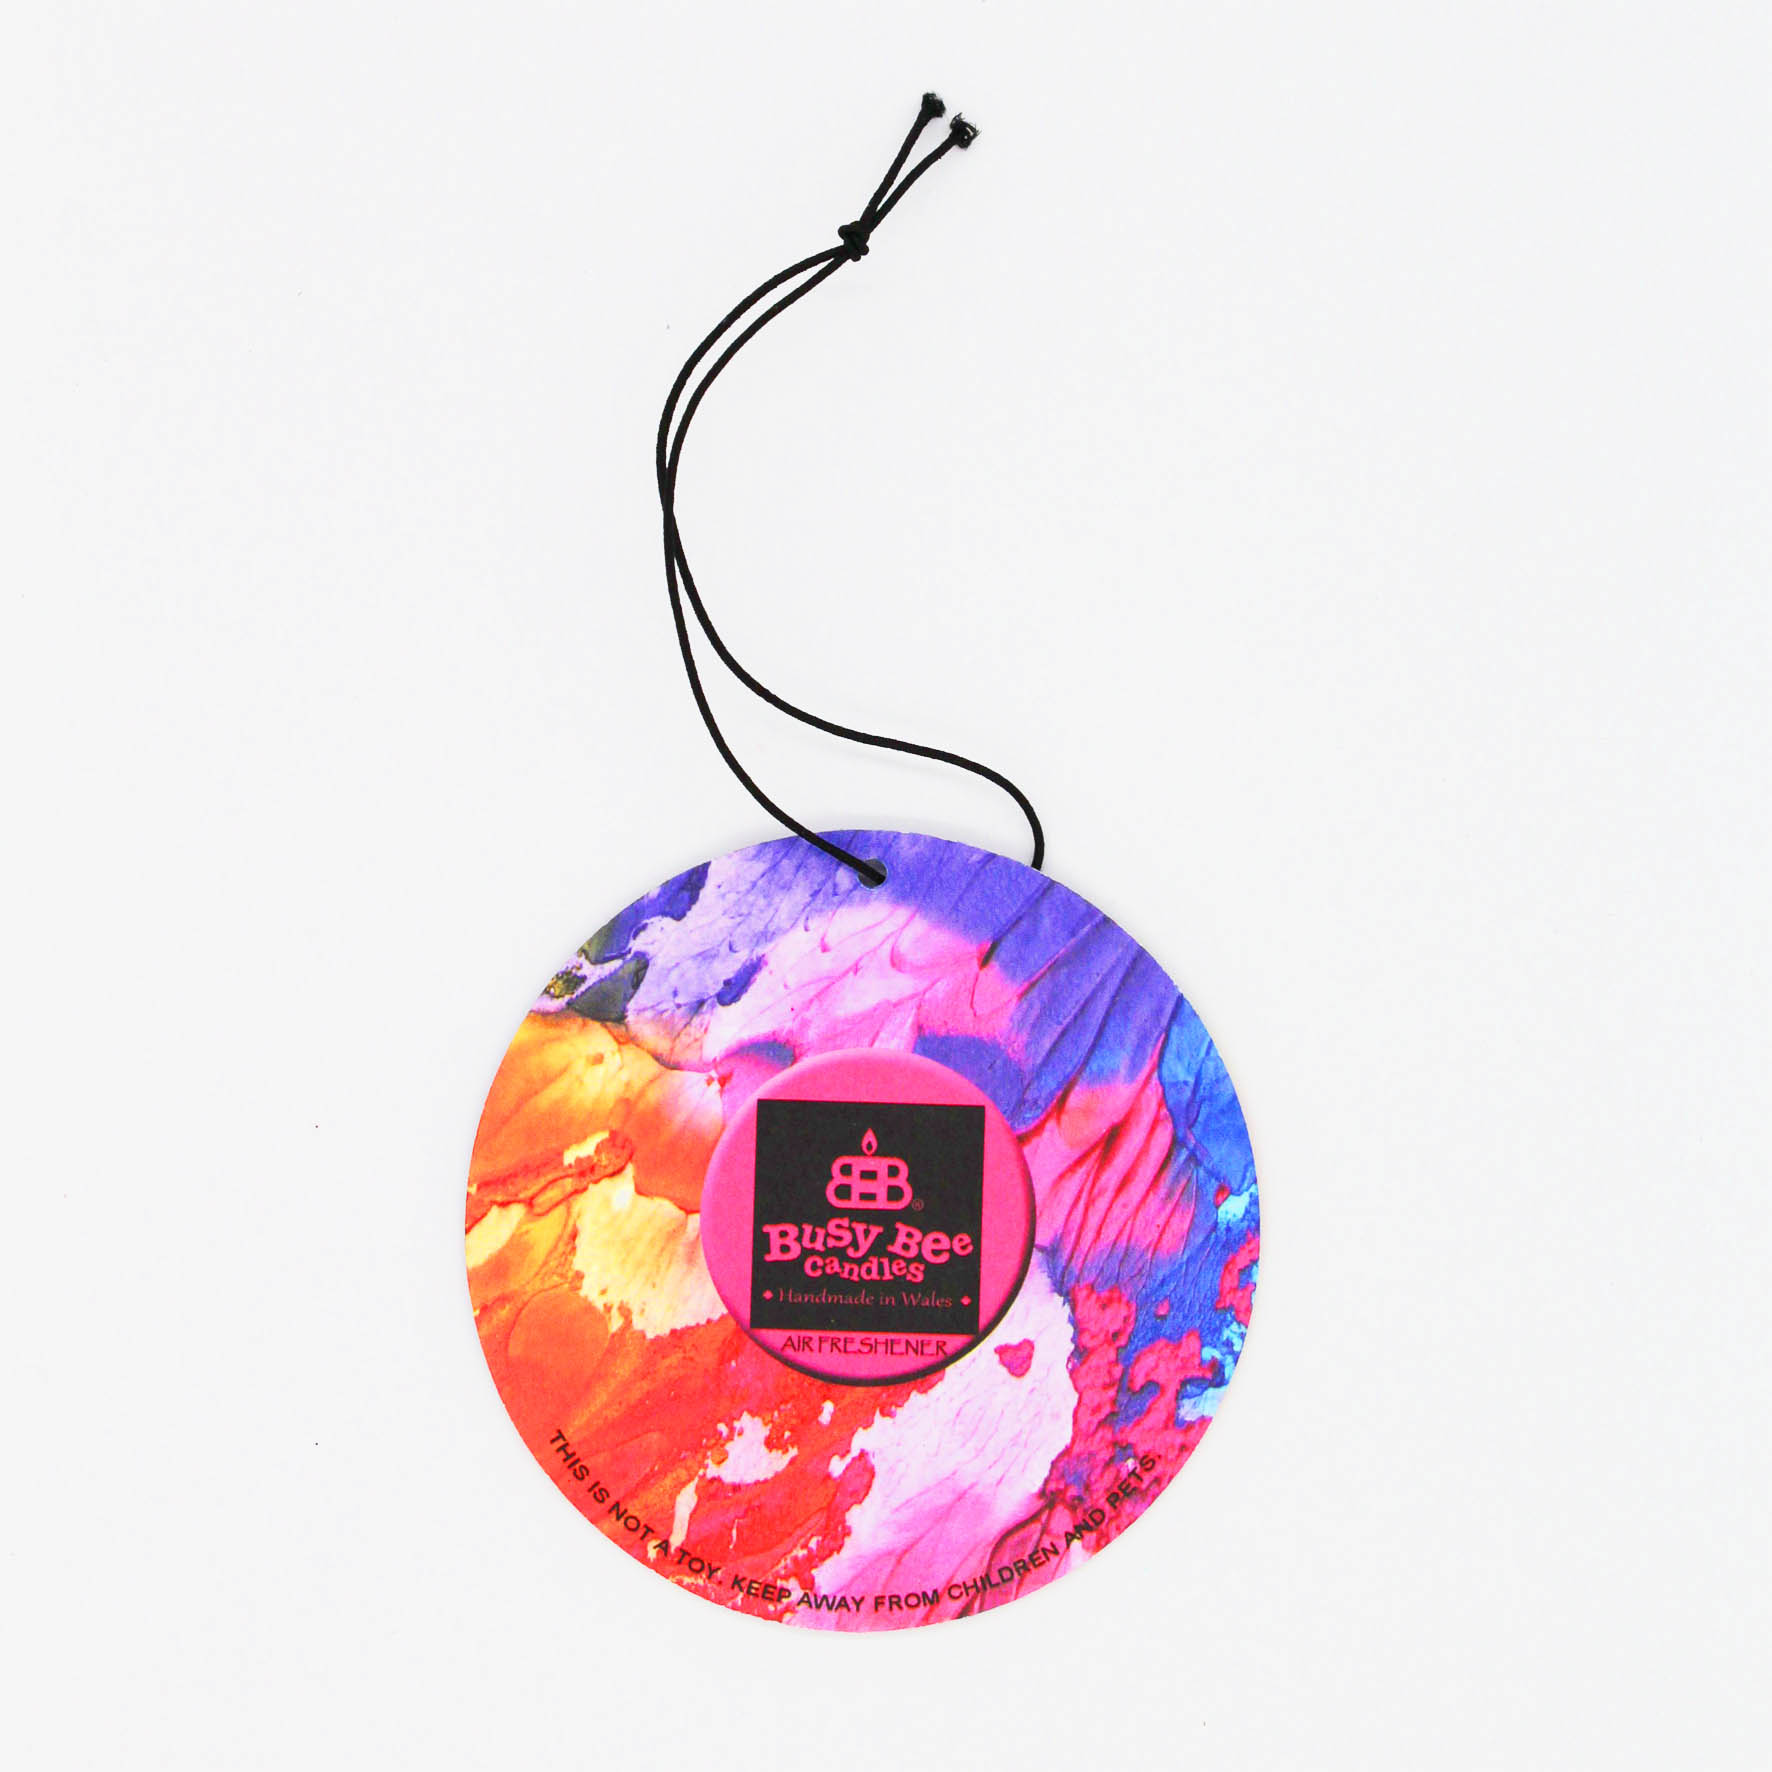 Passion Fruit Hanging Air Freshener